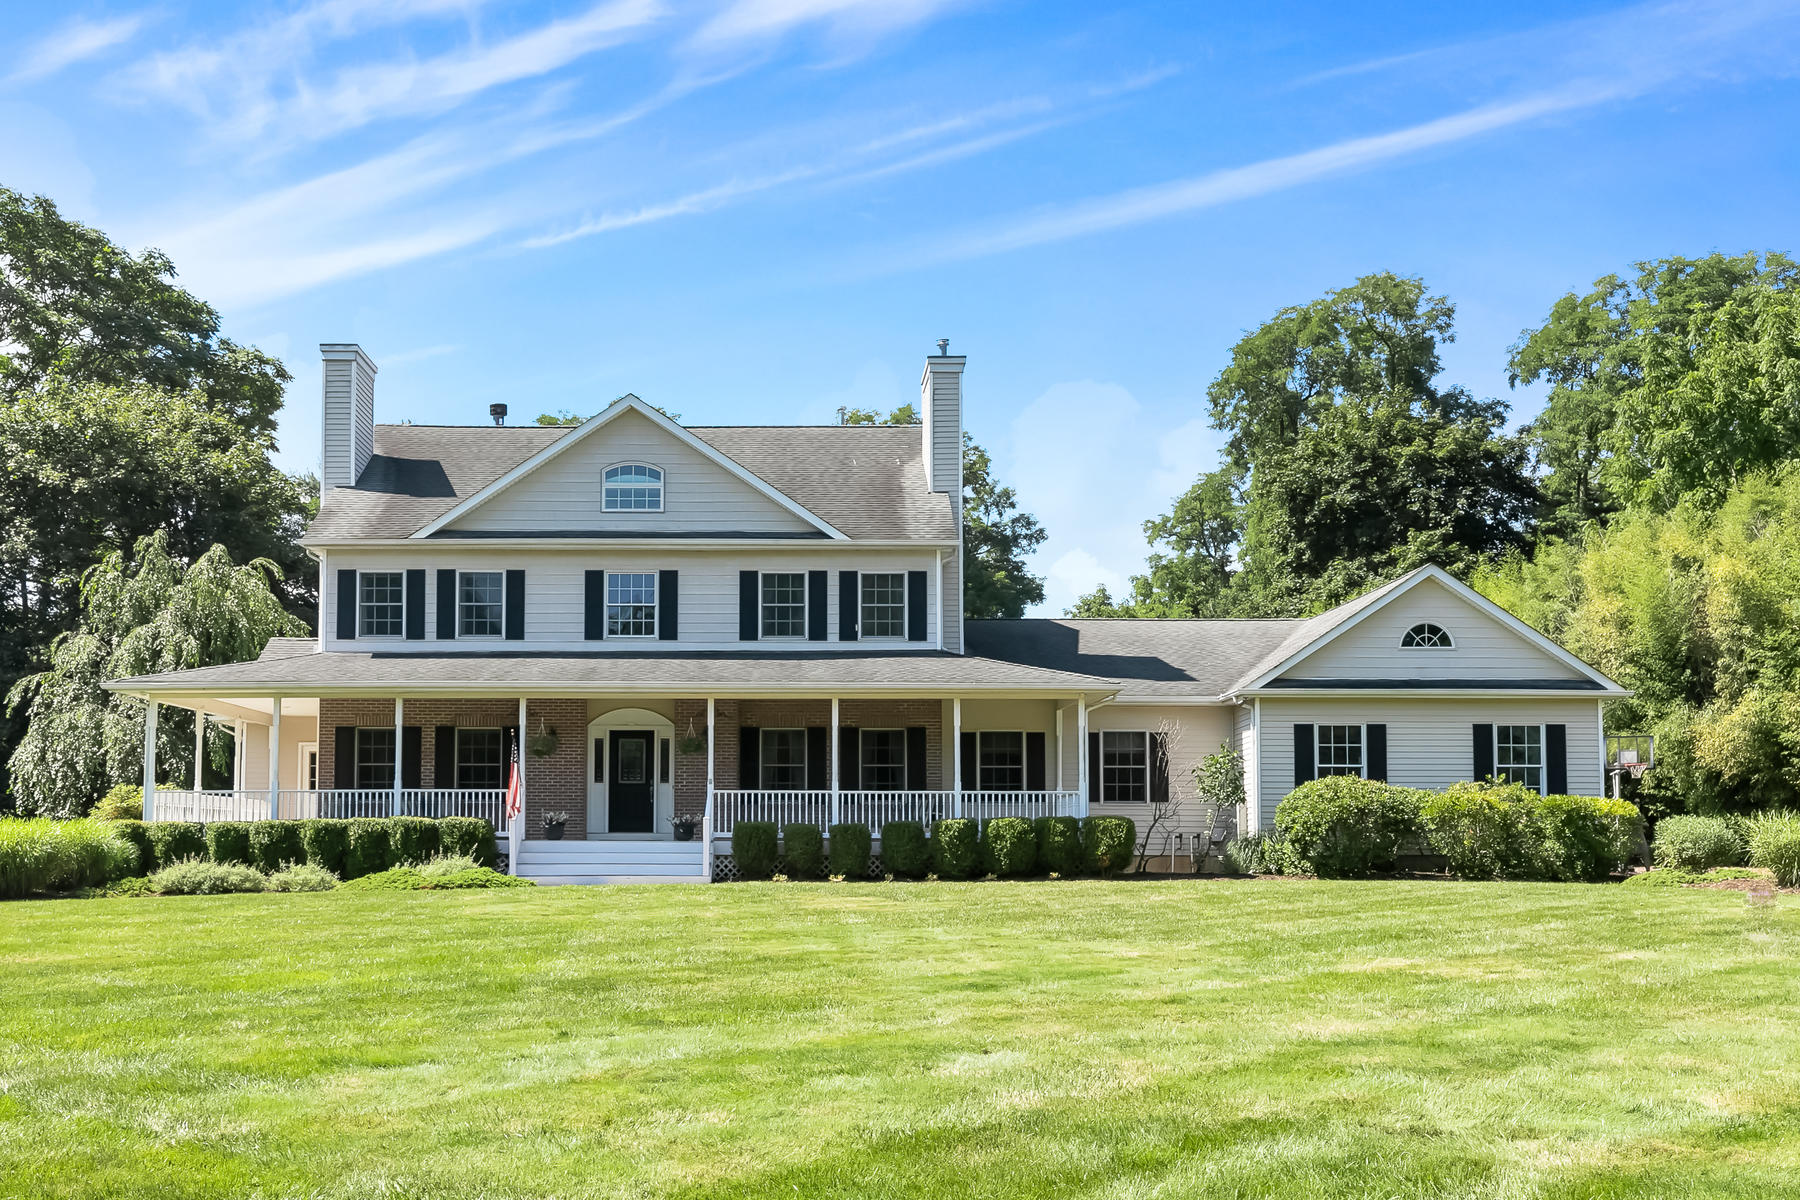 Single Family Homes for Active at Stunning Custom Colonial 21 Prothero Road Colts Neck, New Jersey 07722 United States